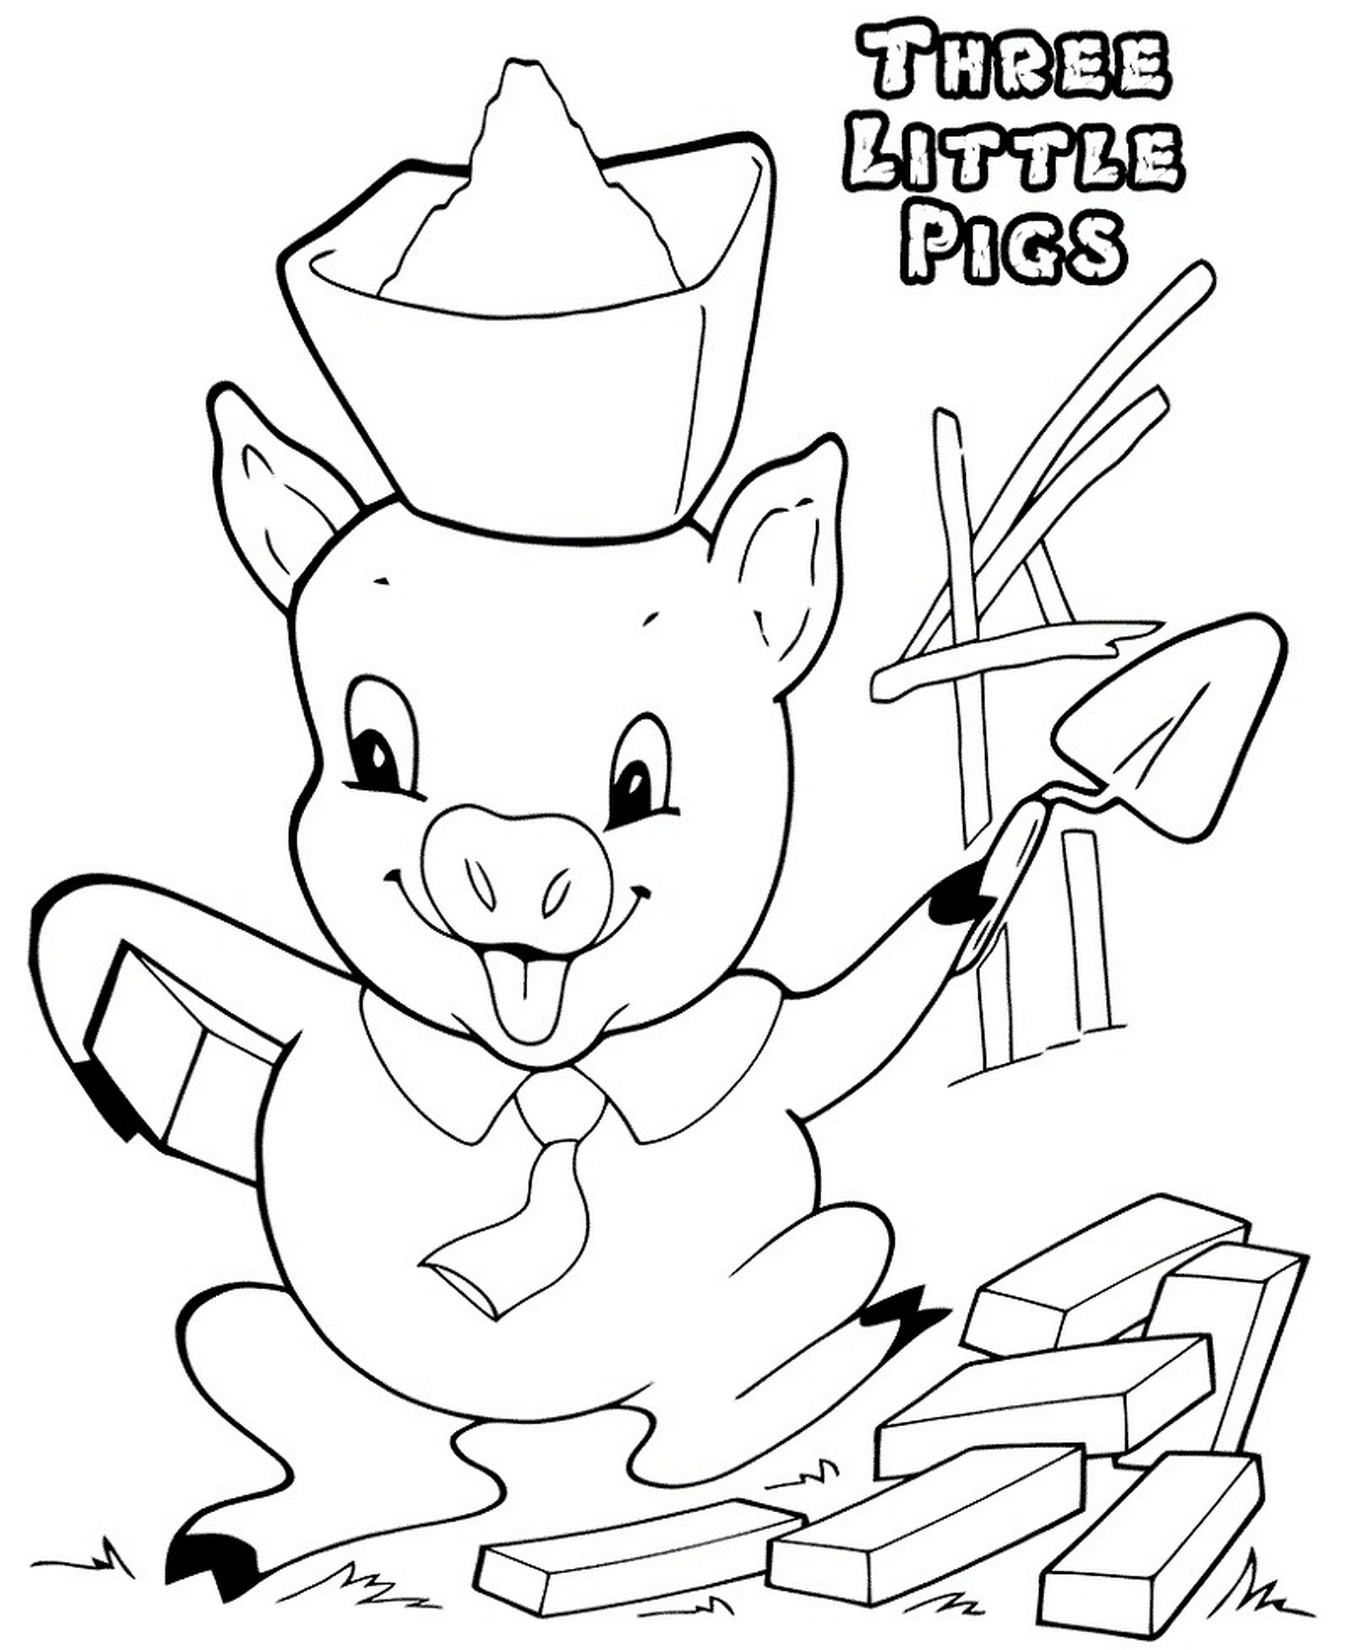 three little pigs coloring pages for preschool for kids